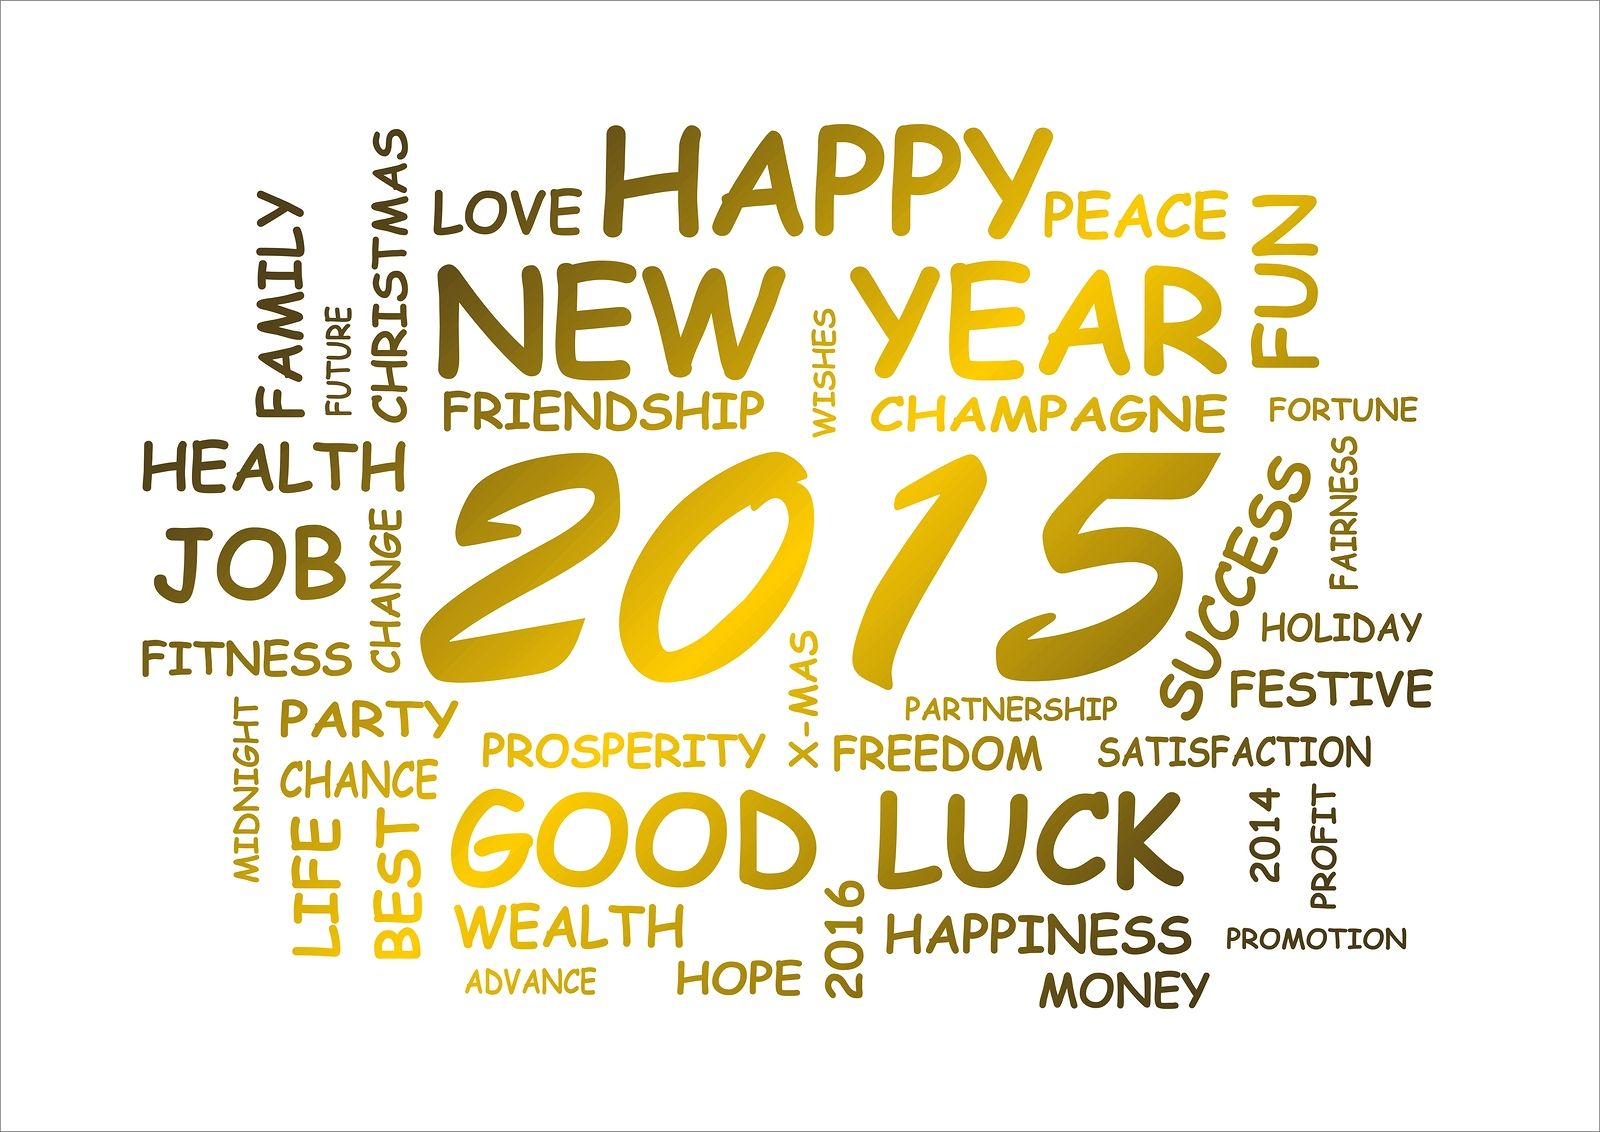 Happy new year images google search everything new year pinterest beautiful super new year 2015 greeting hd wallpapers m4hsunfo